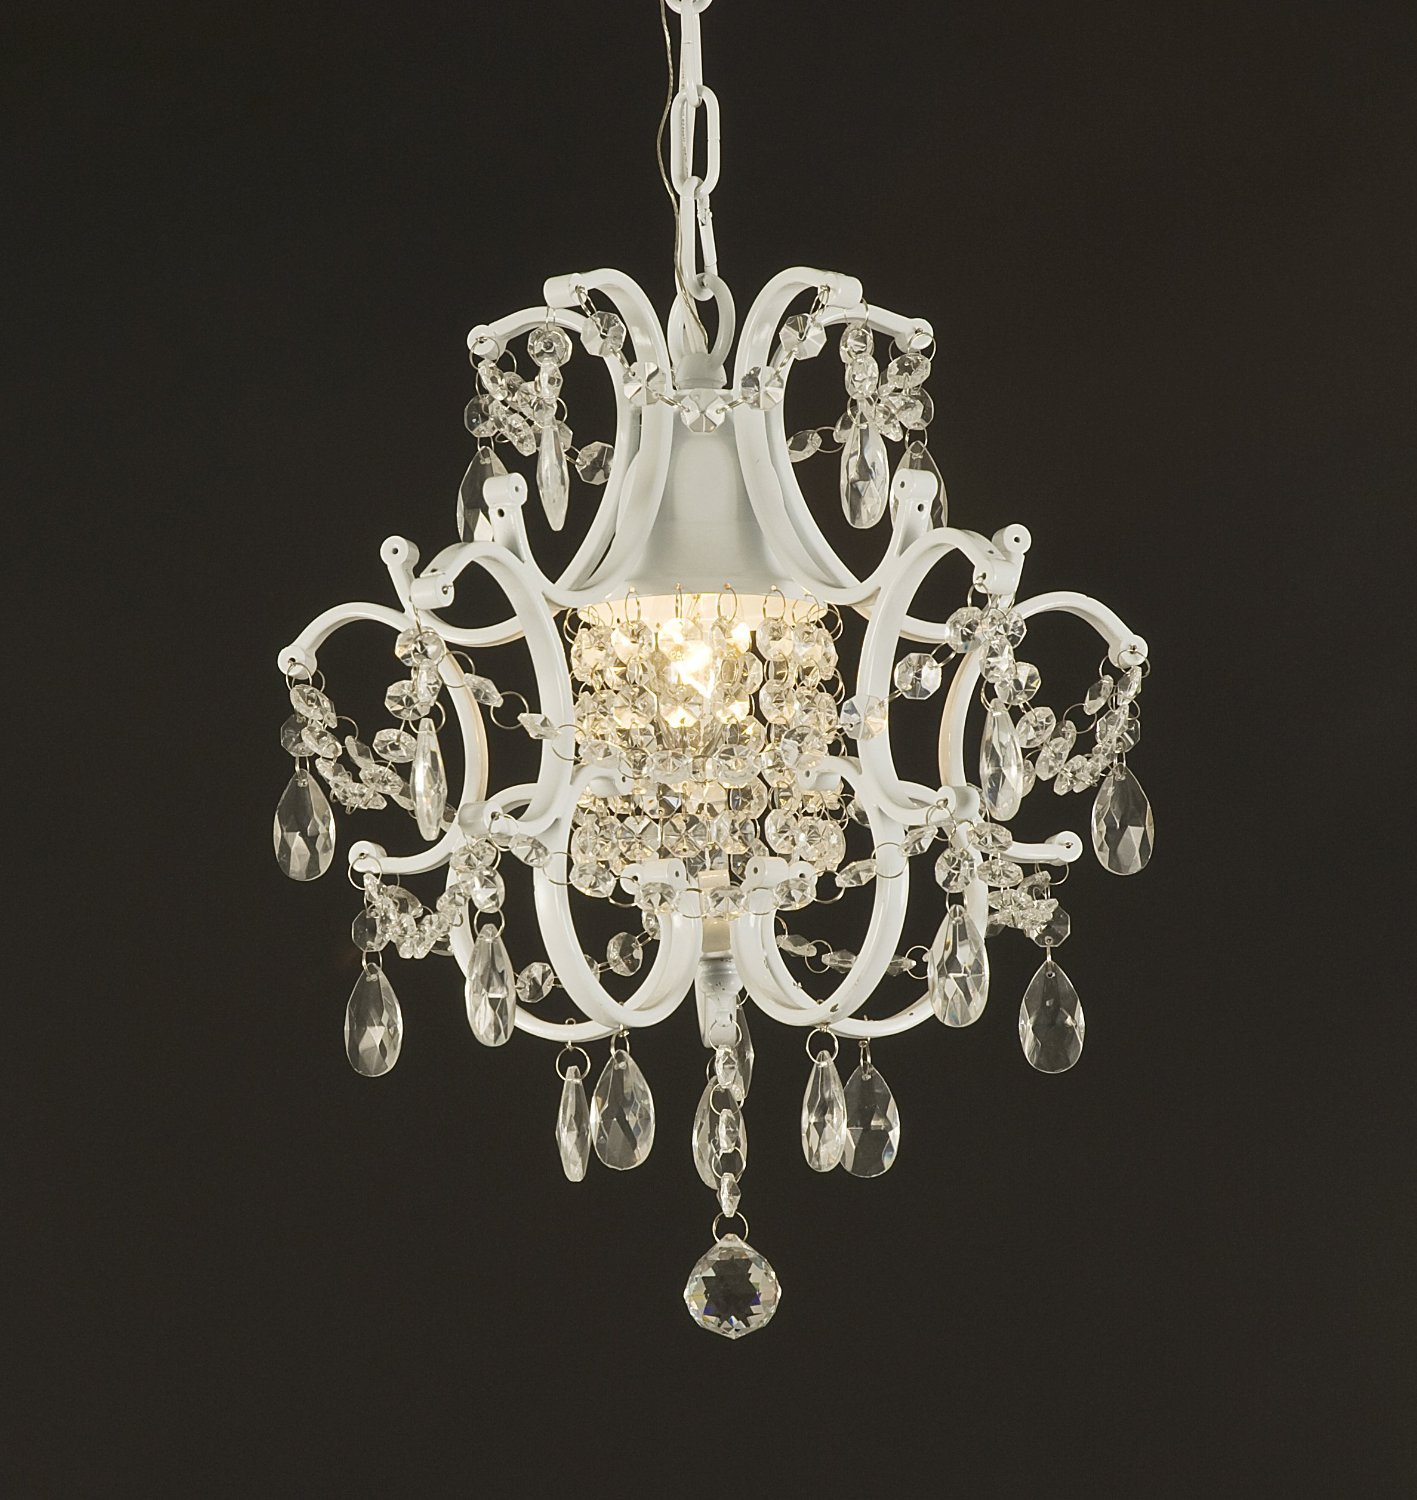 The Best 28 Images Of Chandelier Light Covers